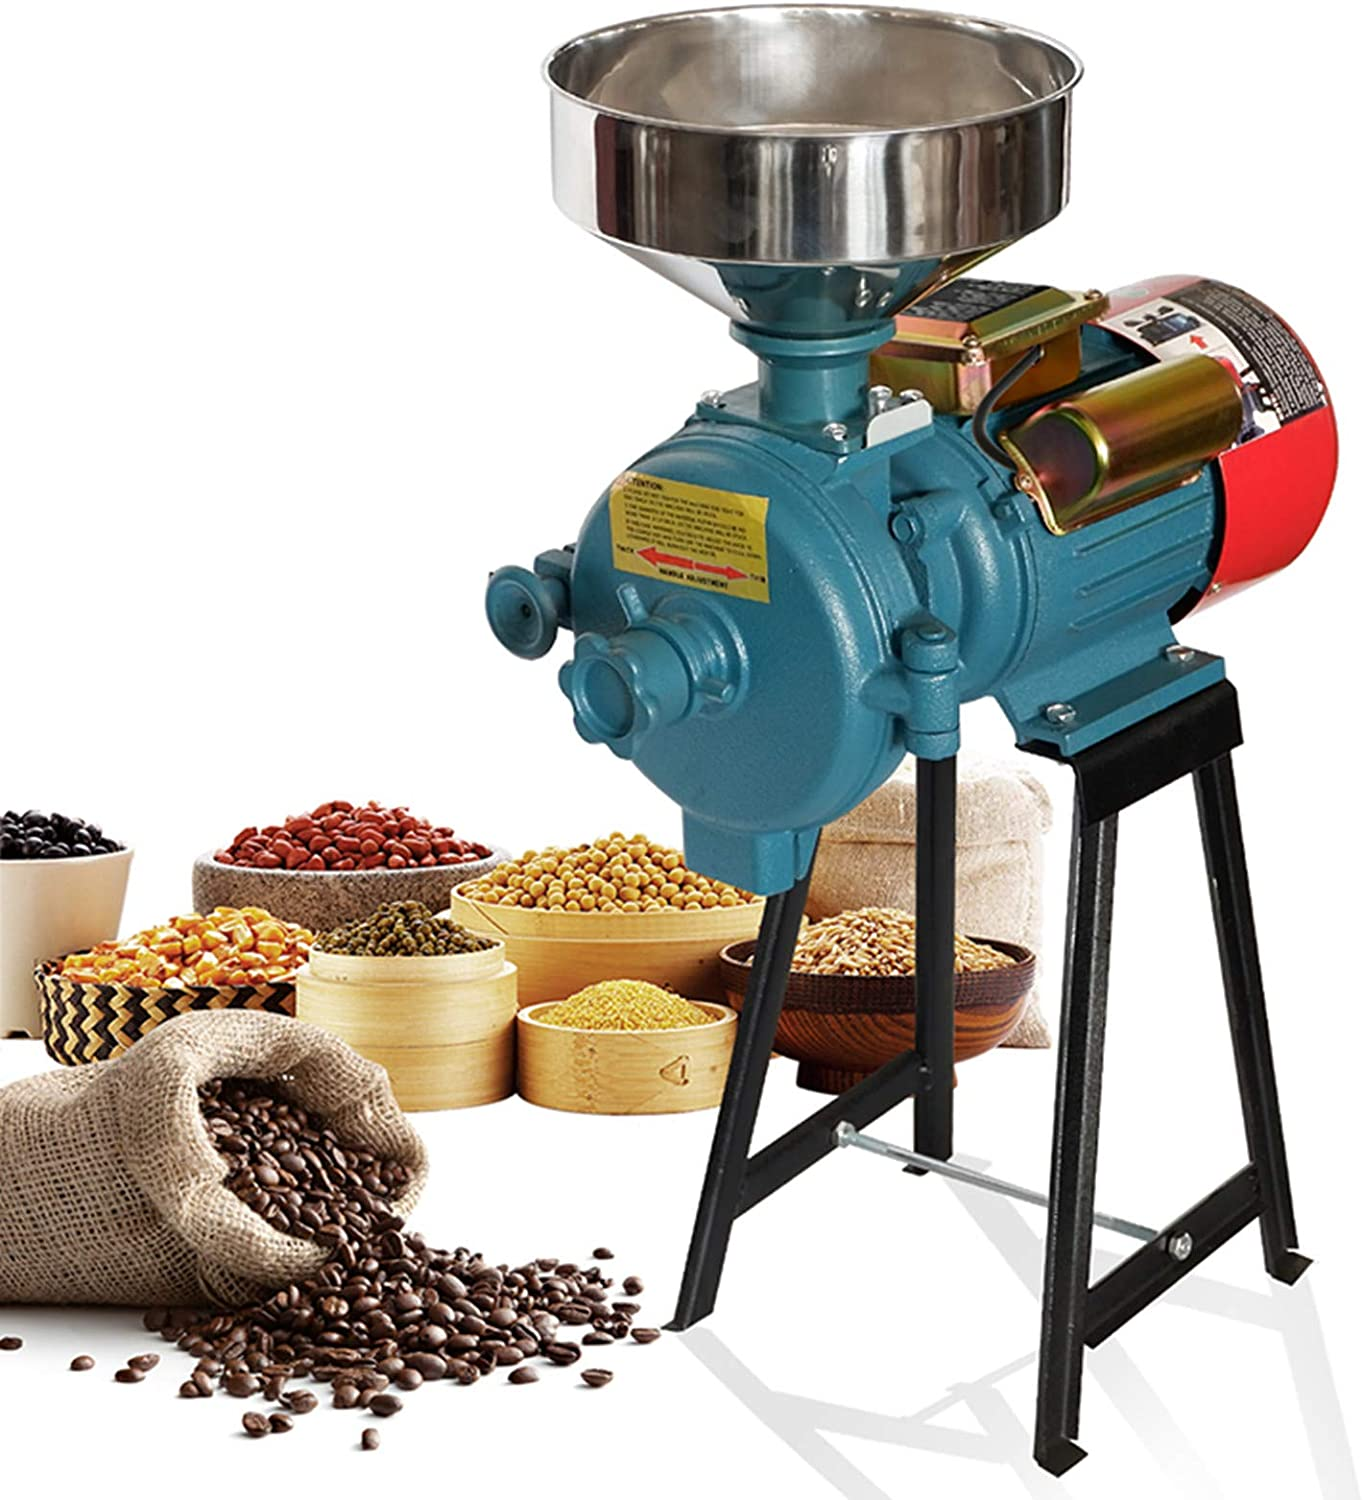 Electric Grain Mill, Mill Grinder Heavy Duty 110V Commercial Grain Grinder Machine Feed Grain Mills Grain Dry Feed Flour Mills Cereals Grinder Rice Corn Grain Coffee Wheat with Funnel (3000W)(Dry Grinder)